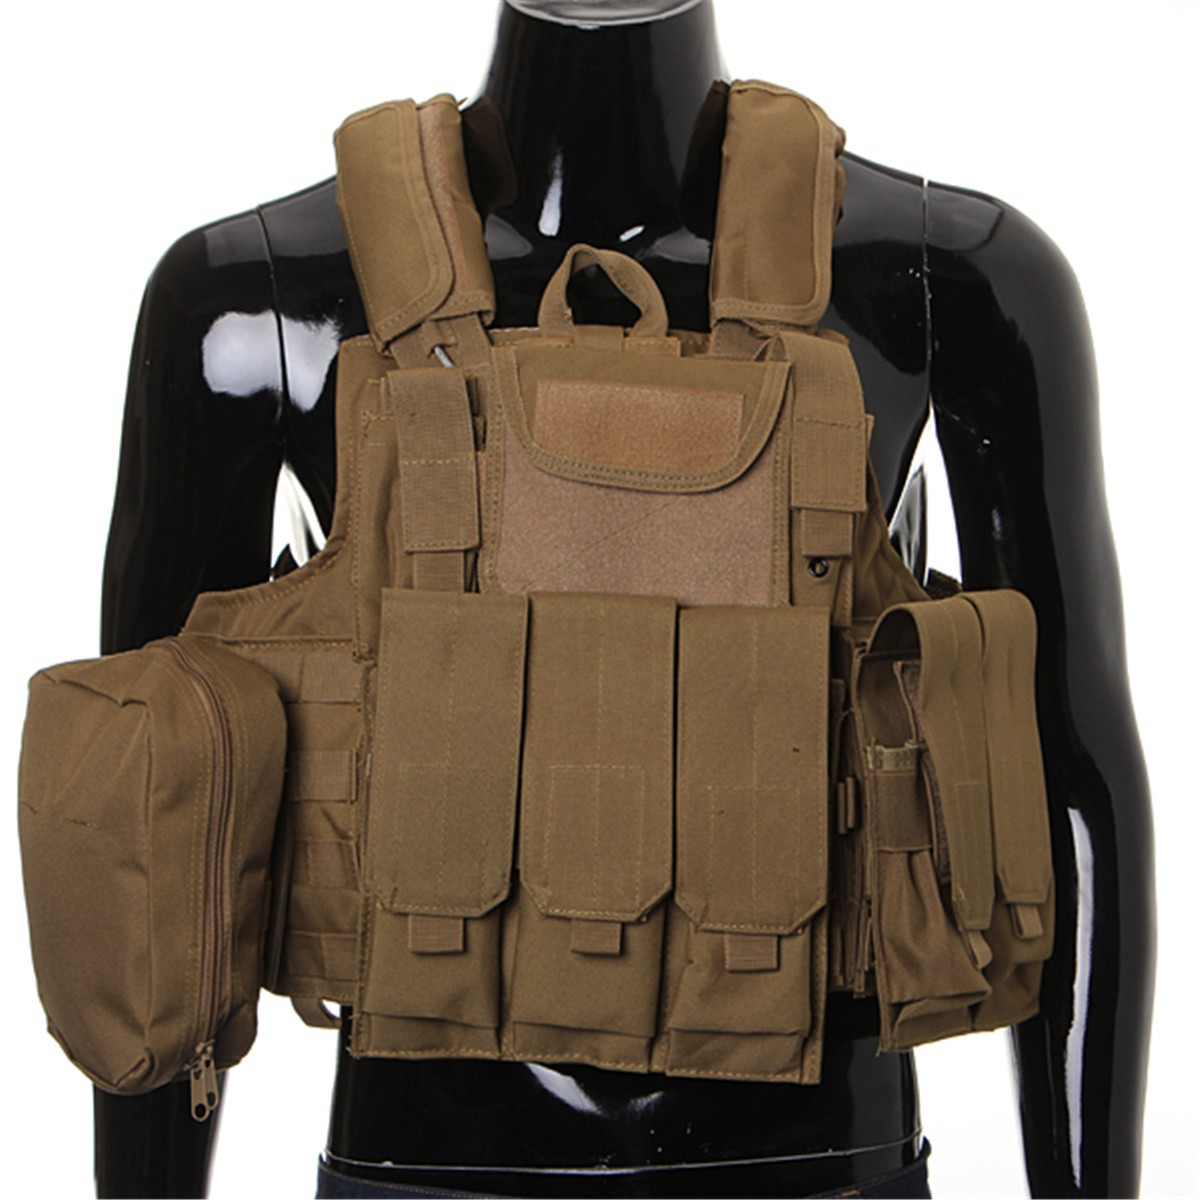 Фотография Tactical Vest Airsoft Paintball Combat Vest W/Magazine Pouch+Utility Bag Releasable Armor Carrier Vest 7colors option